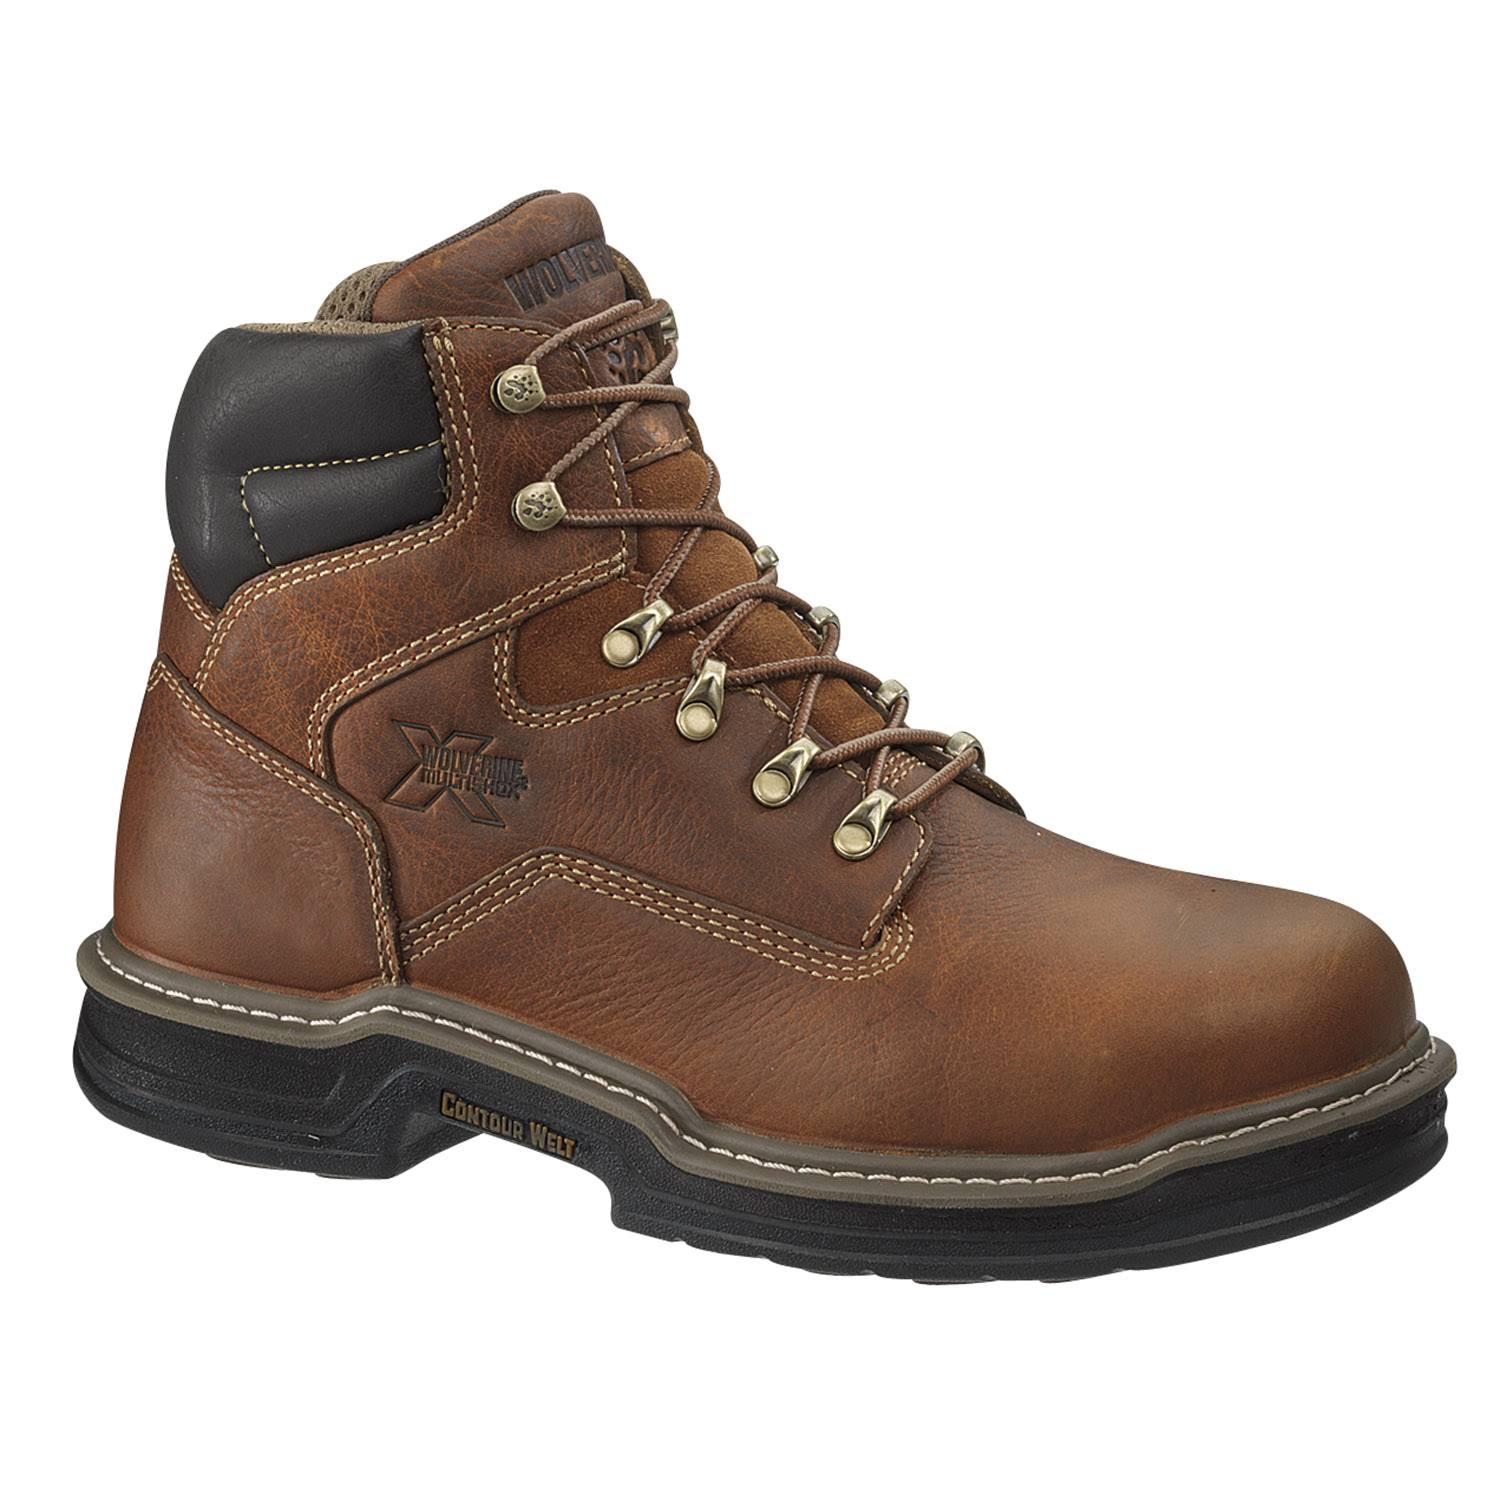 Wolverine Men's Steel Toe Raider Boots - Brown, 10.5 US